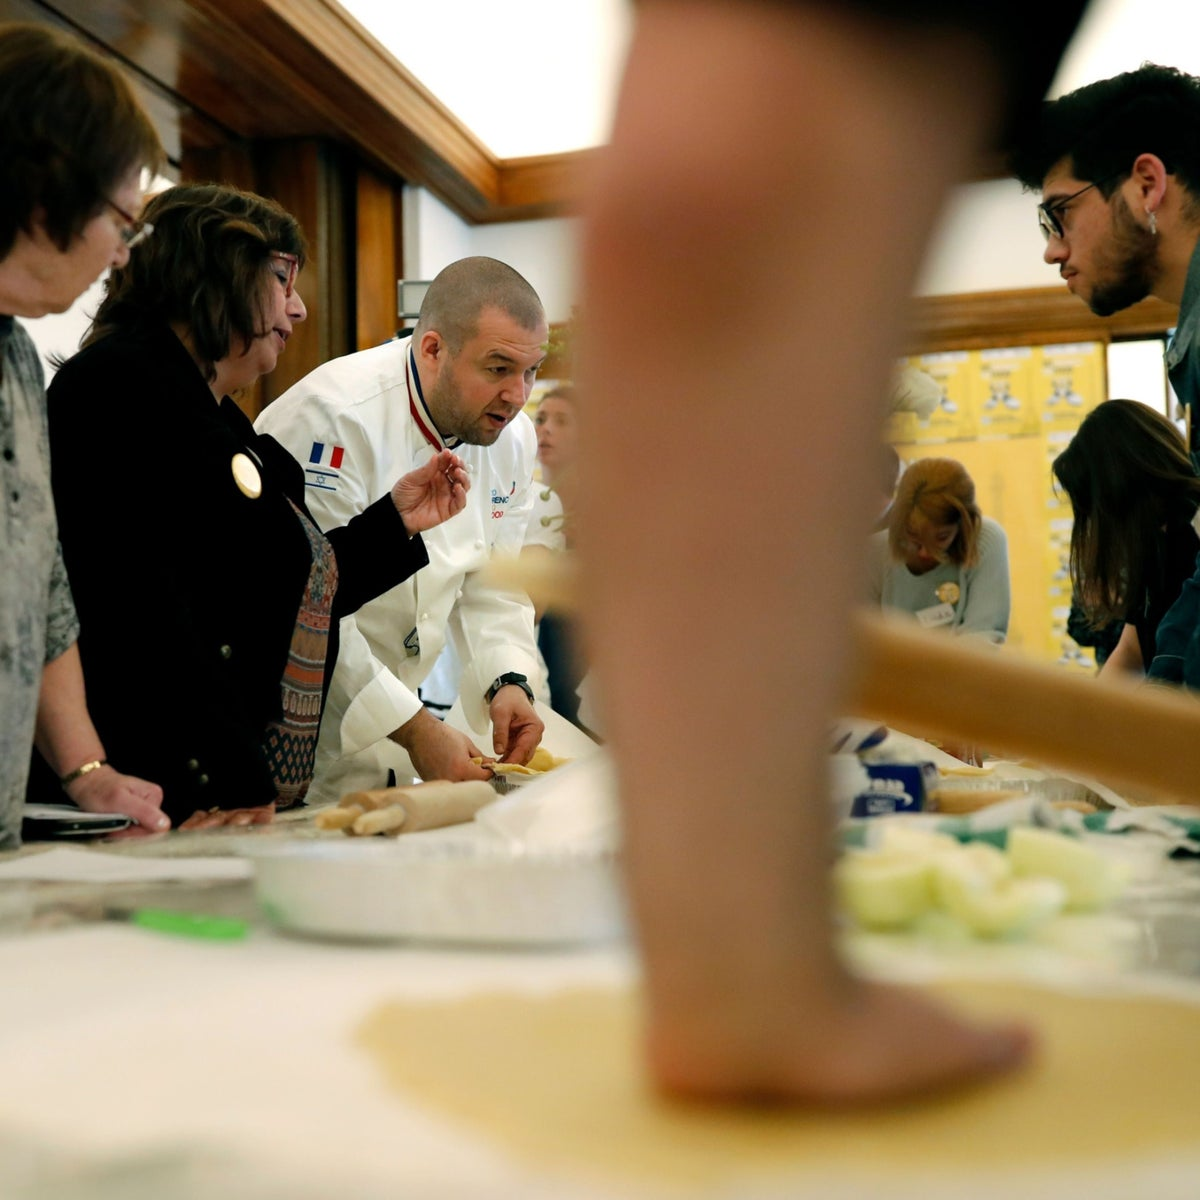 French chef Guillaume Gomez, head chef at France's Elysee palace, answers journalists question during a cooking class for teenage members of an Israeli NGO that supports LGBT rights, at the French embassador's residence in Tel Aviv on February 5, 2018,